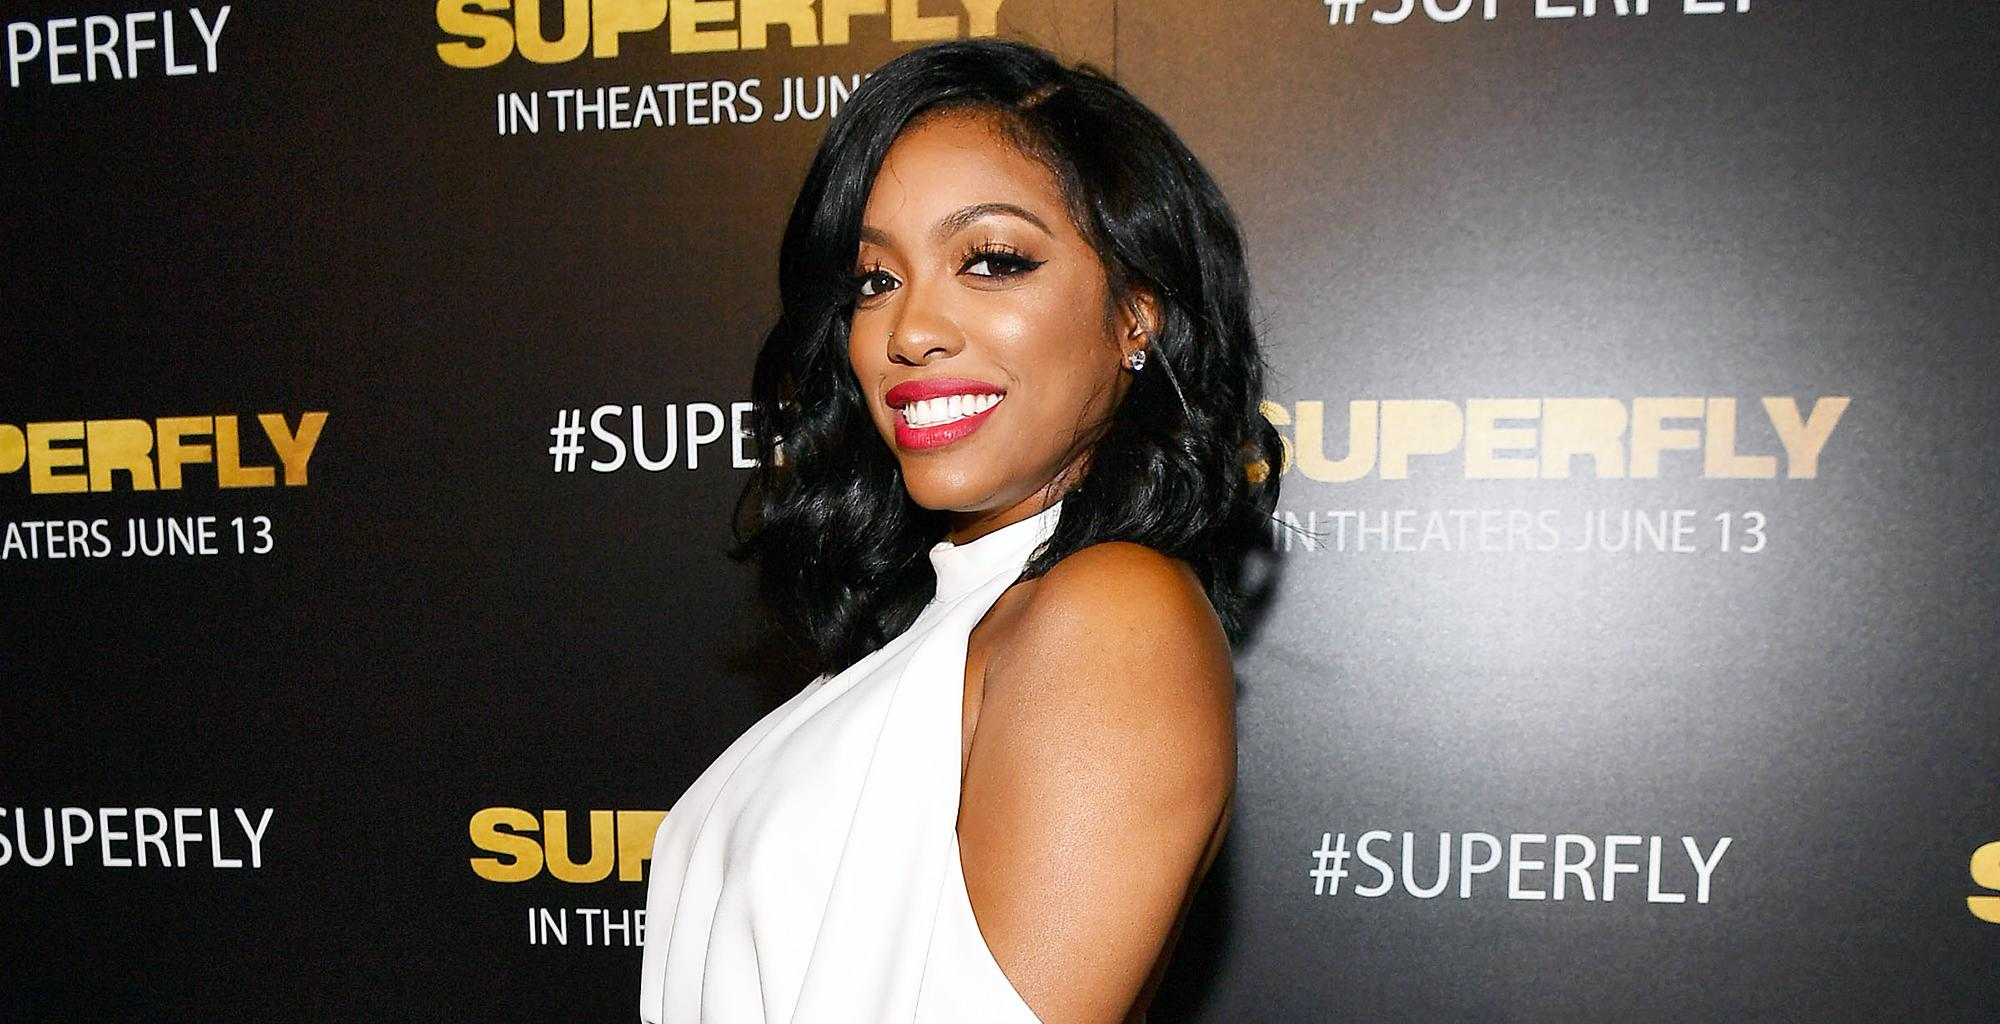 Porsha Williams Flaunted Red Hair On Andy Cohen's Show - Fans Were Impressed By Her Makeup That She Did Herself